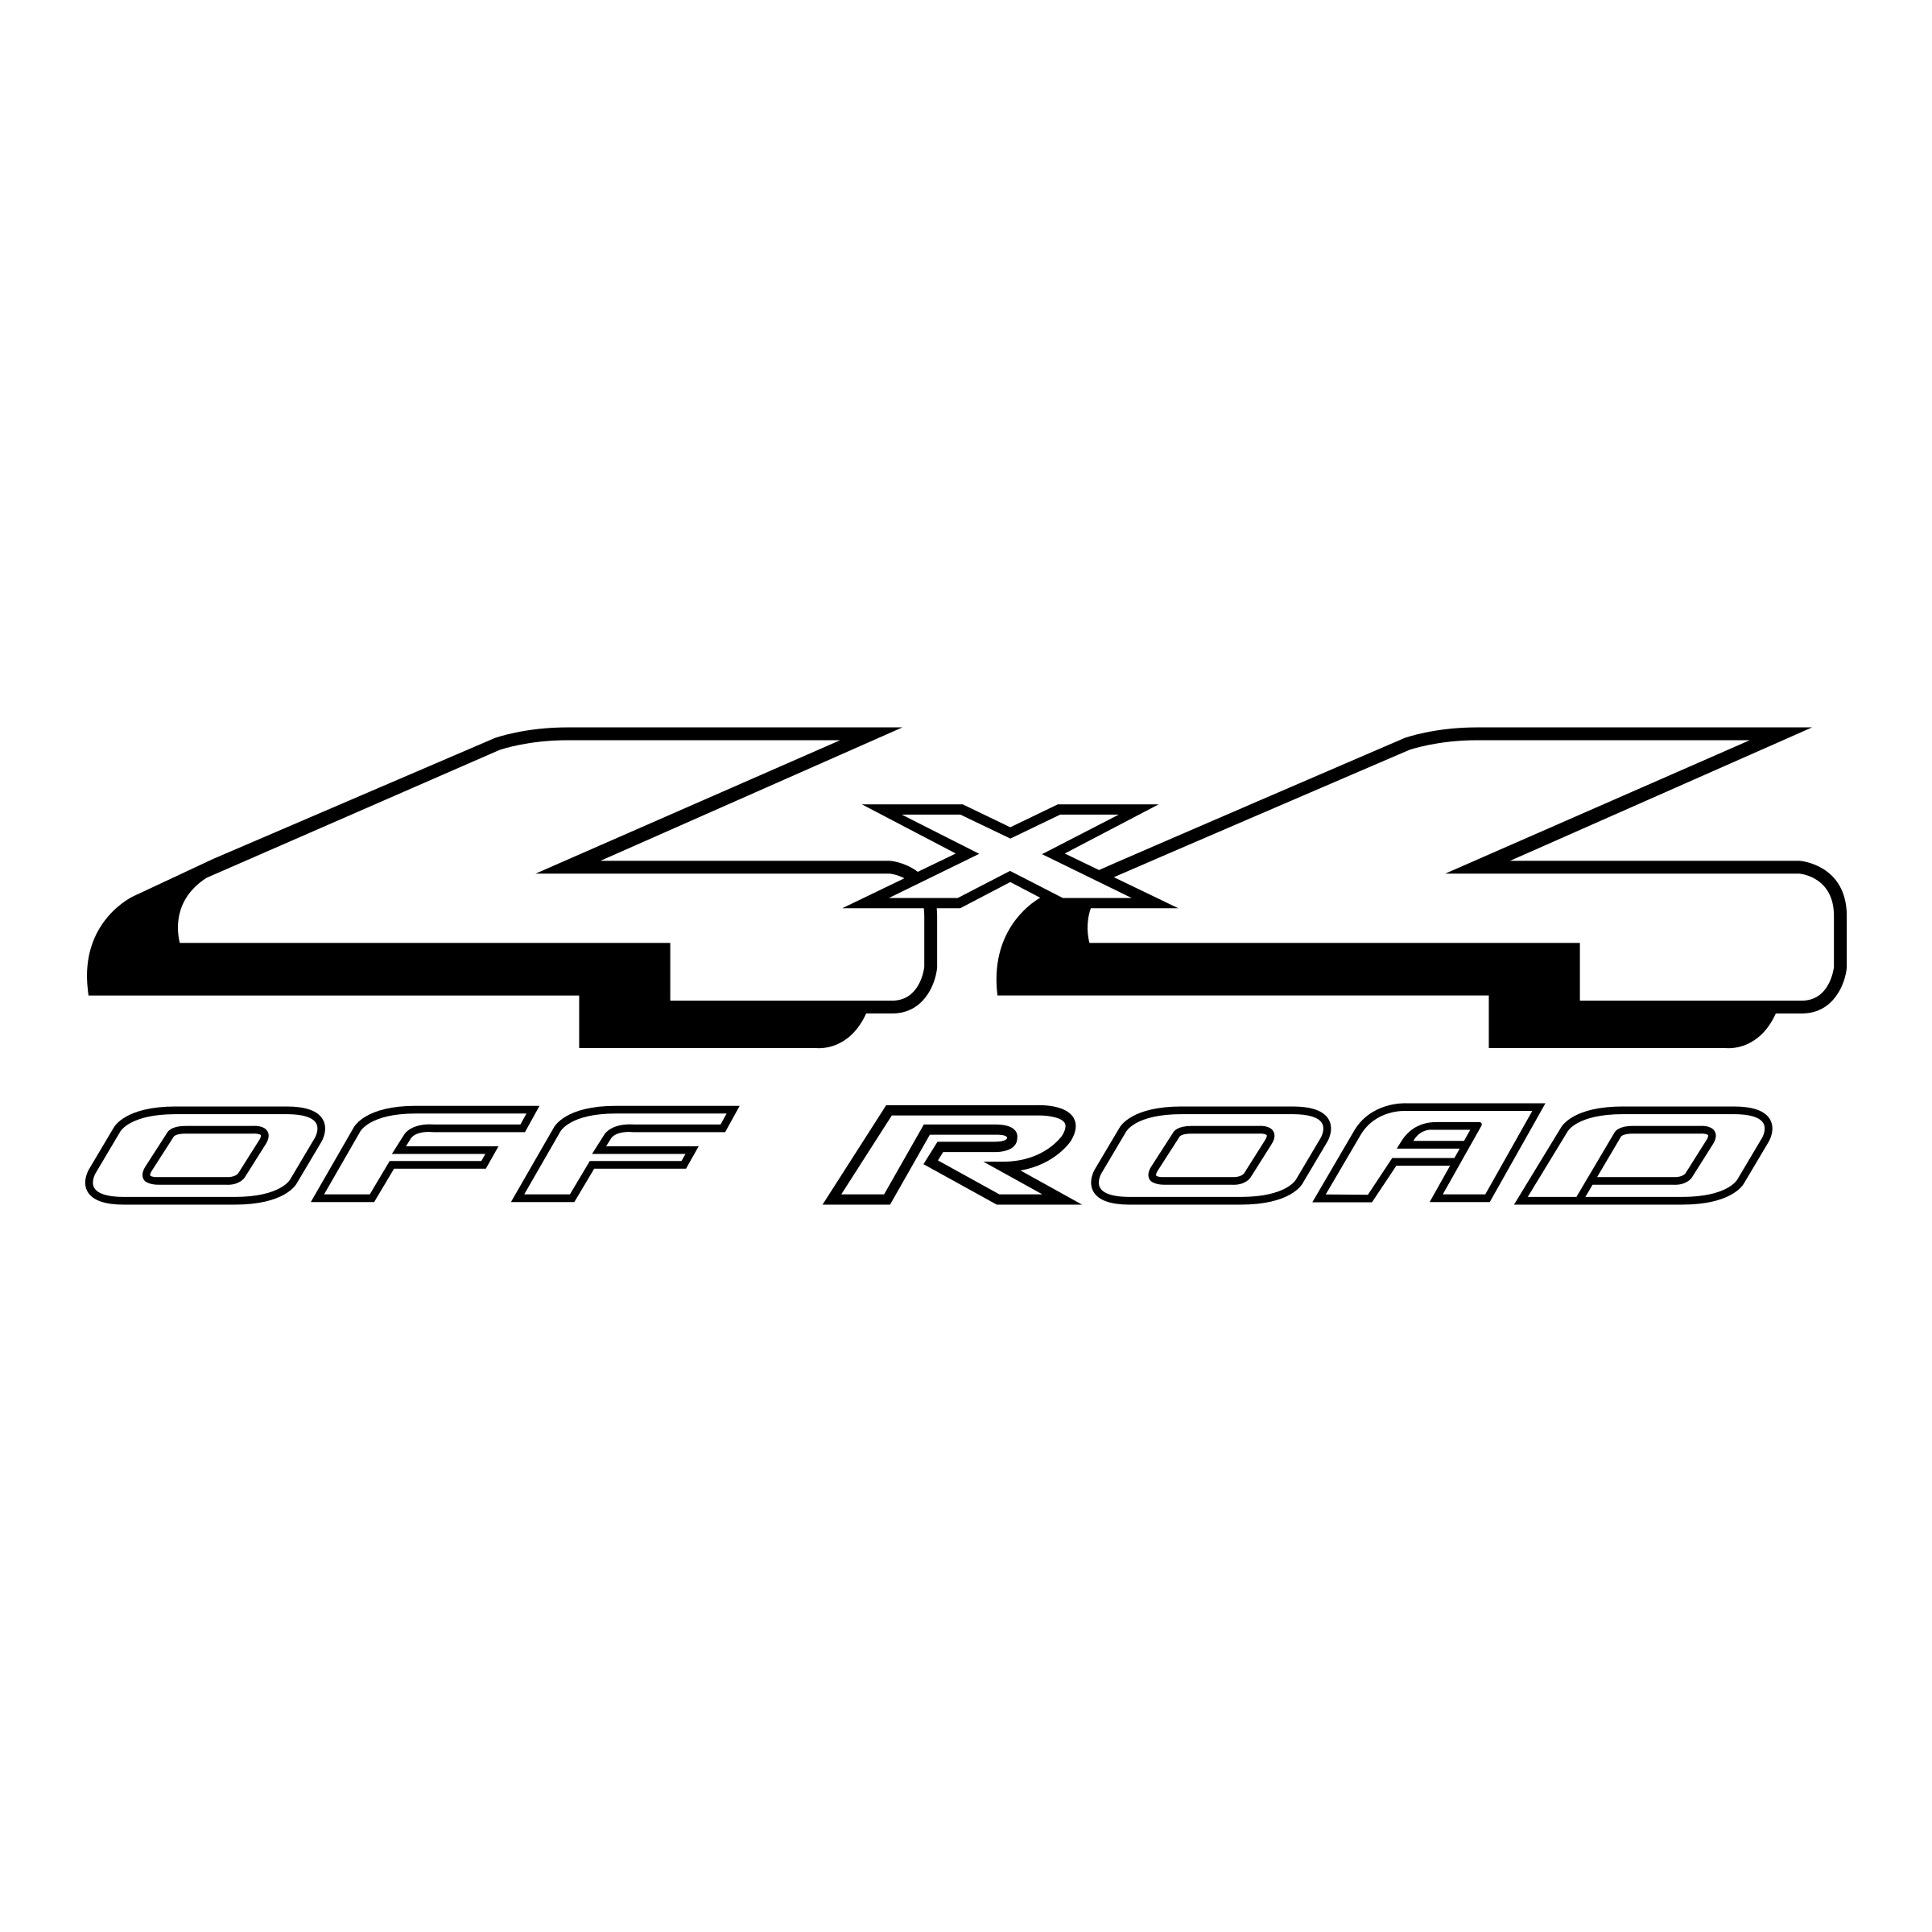 4x4 vector black and white. X off road